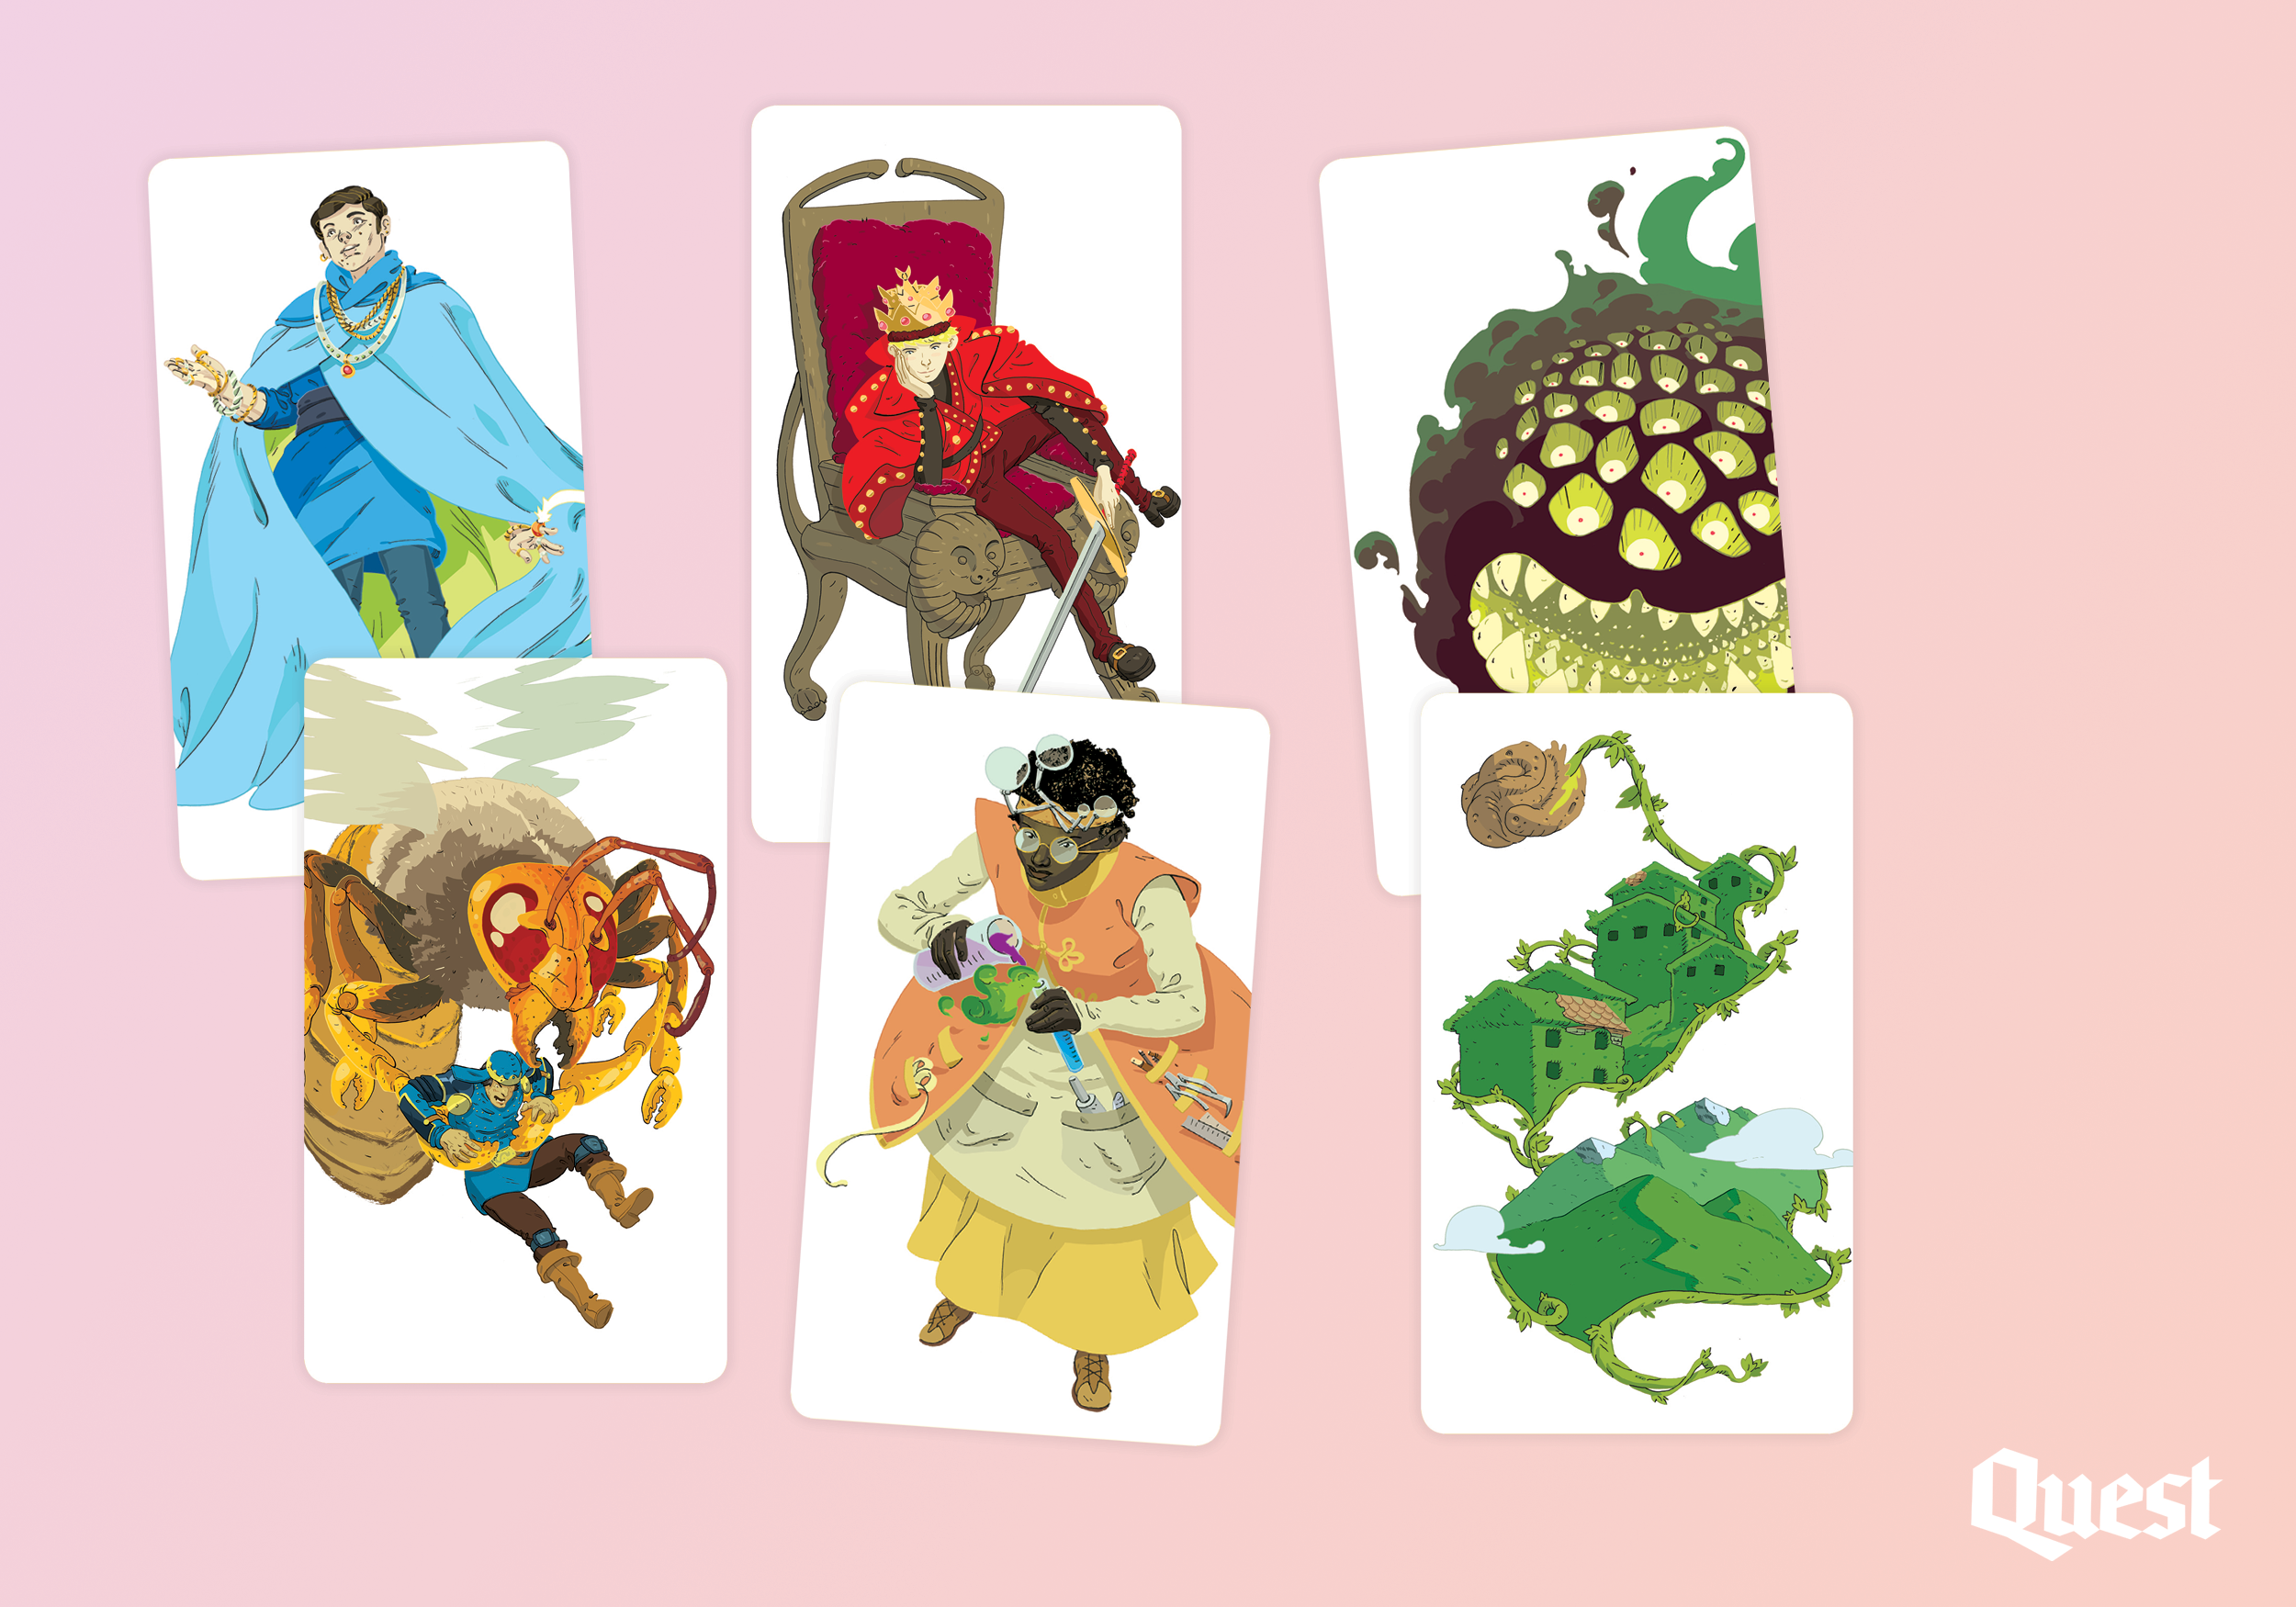 A collection of 6 characters: The Aristocrat, The Tyrant, Fear Itself, Murder Hornet, Professor Prim, and Leaftide.